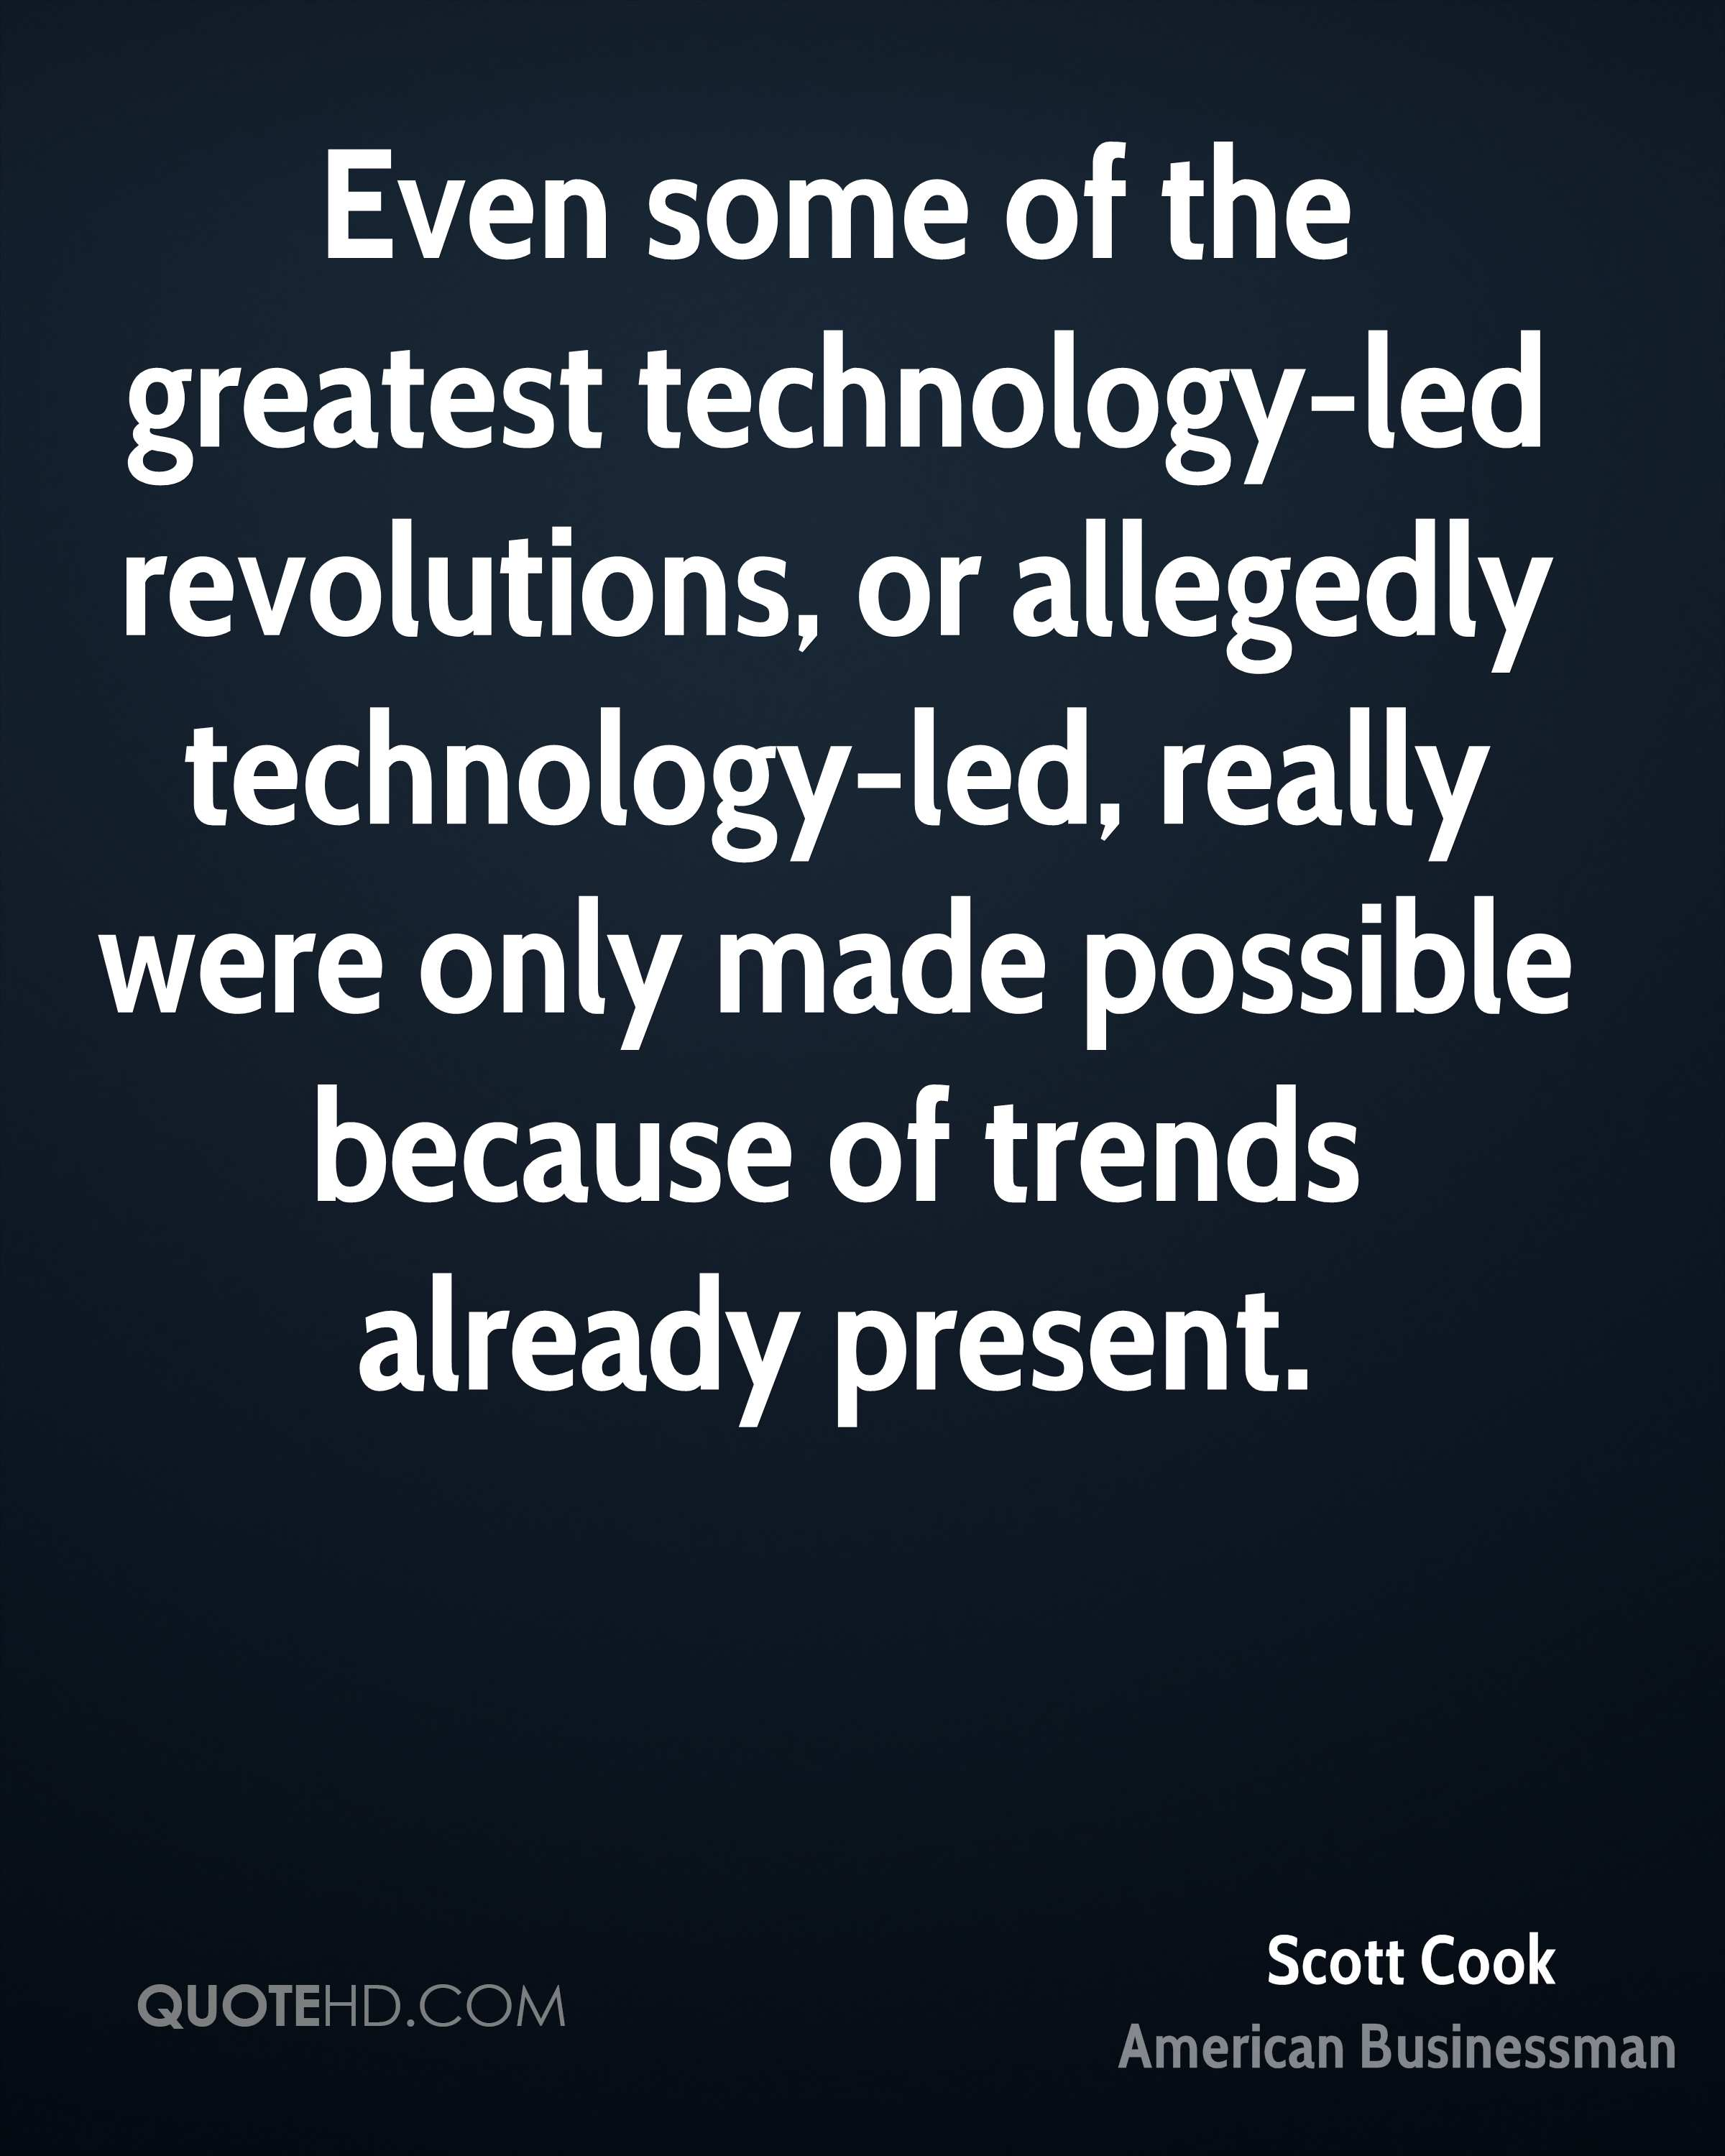 Even some of the greatest technology-led revolutions, or allegedly technology-led, really were only made possible because of trends already present.